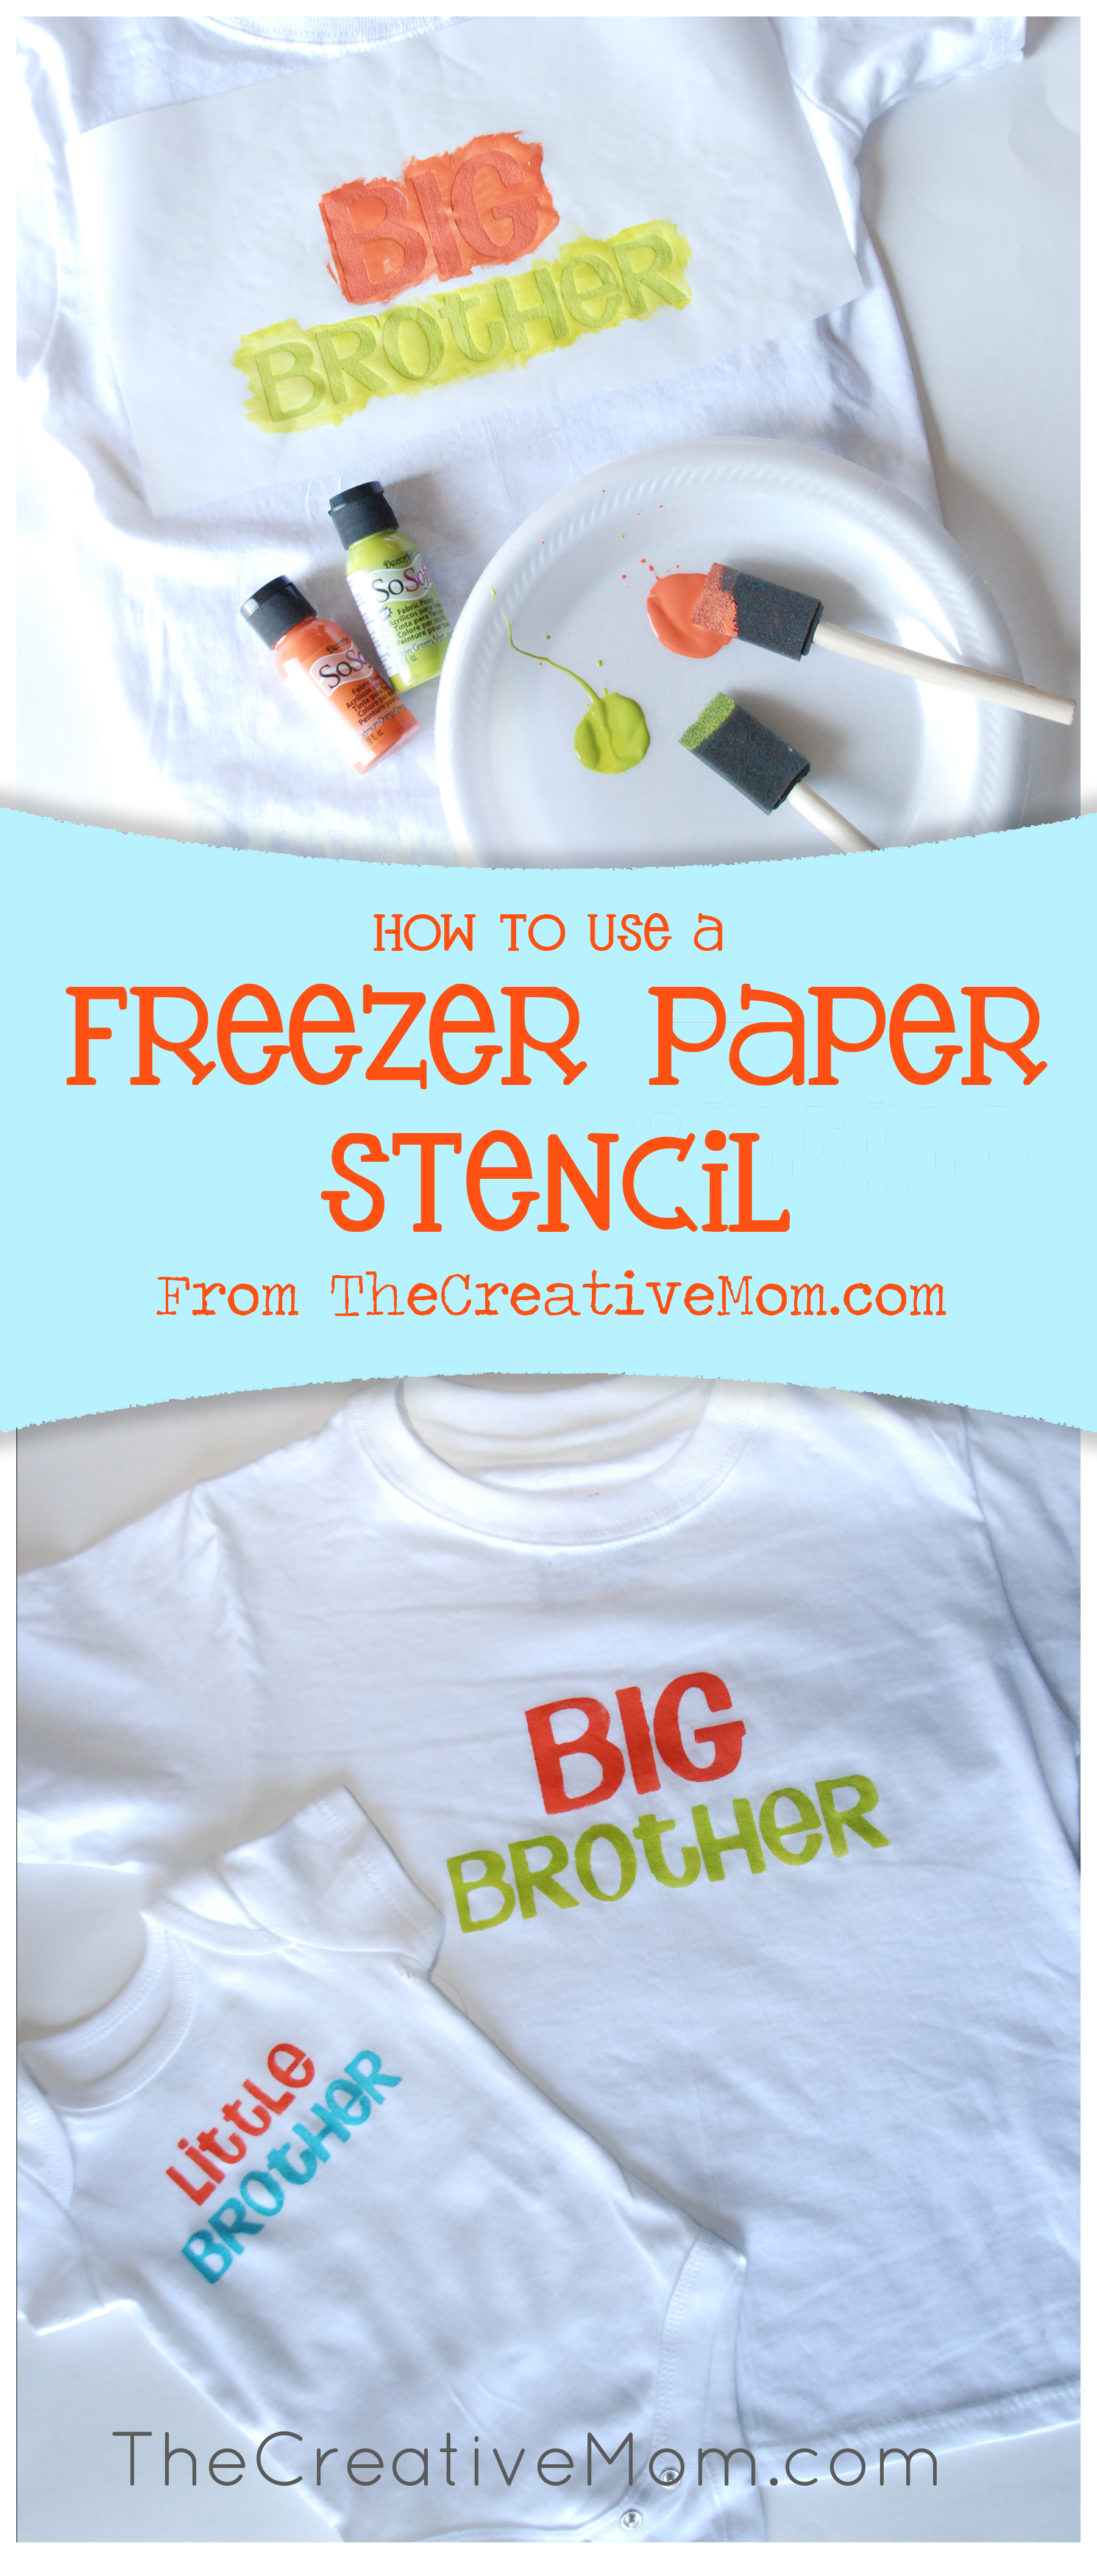 How to use a Freezer Paper Stencil